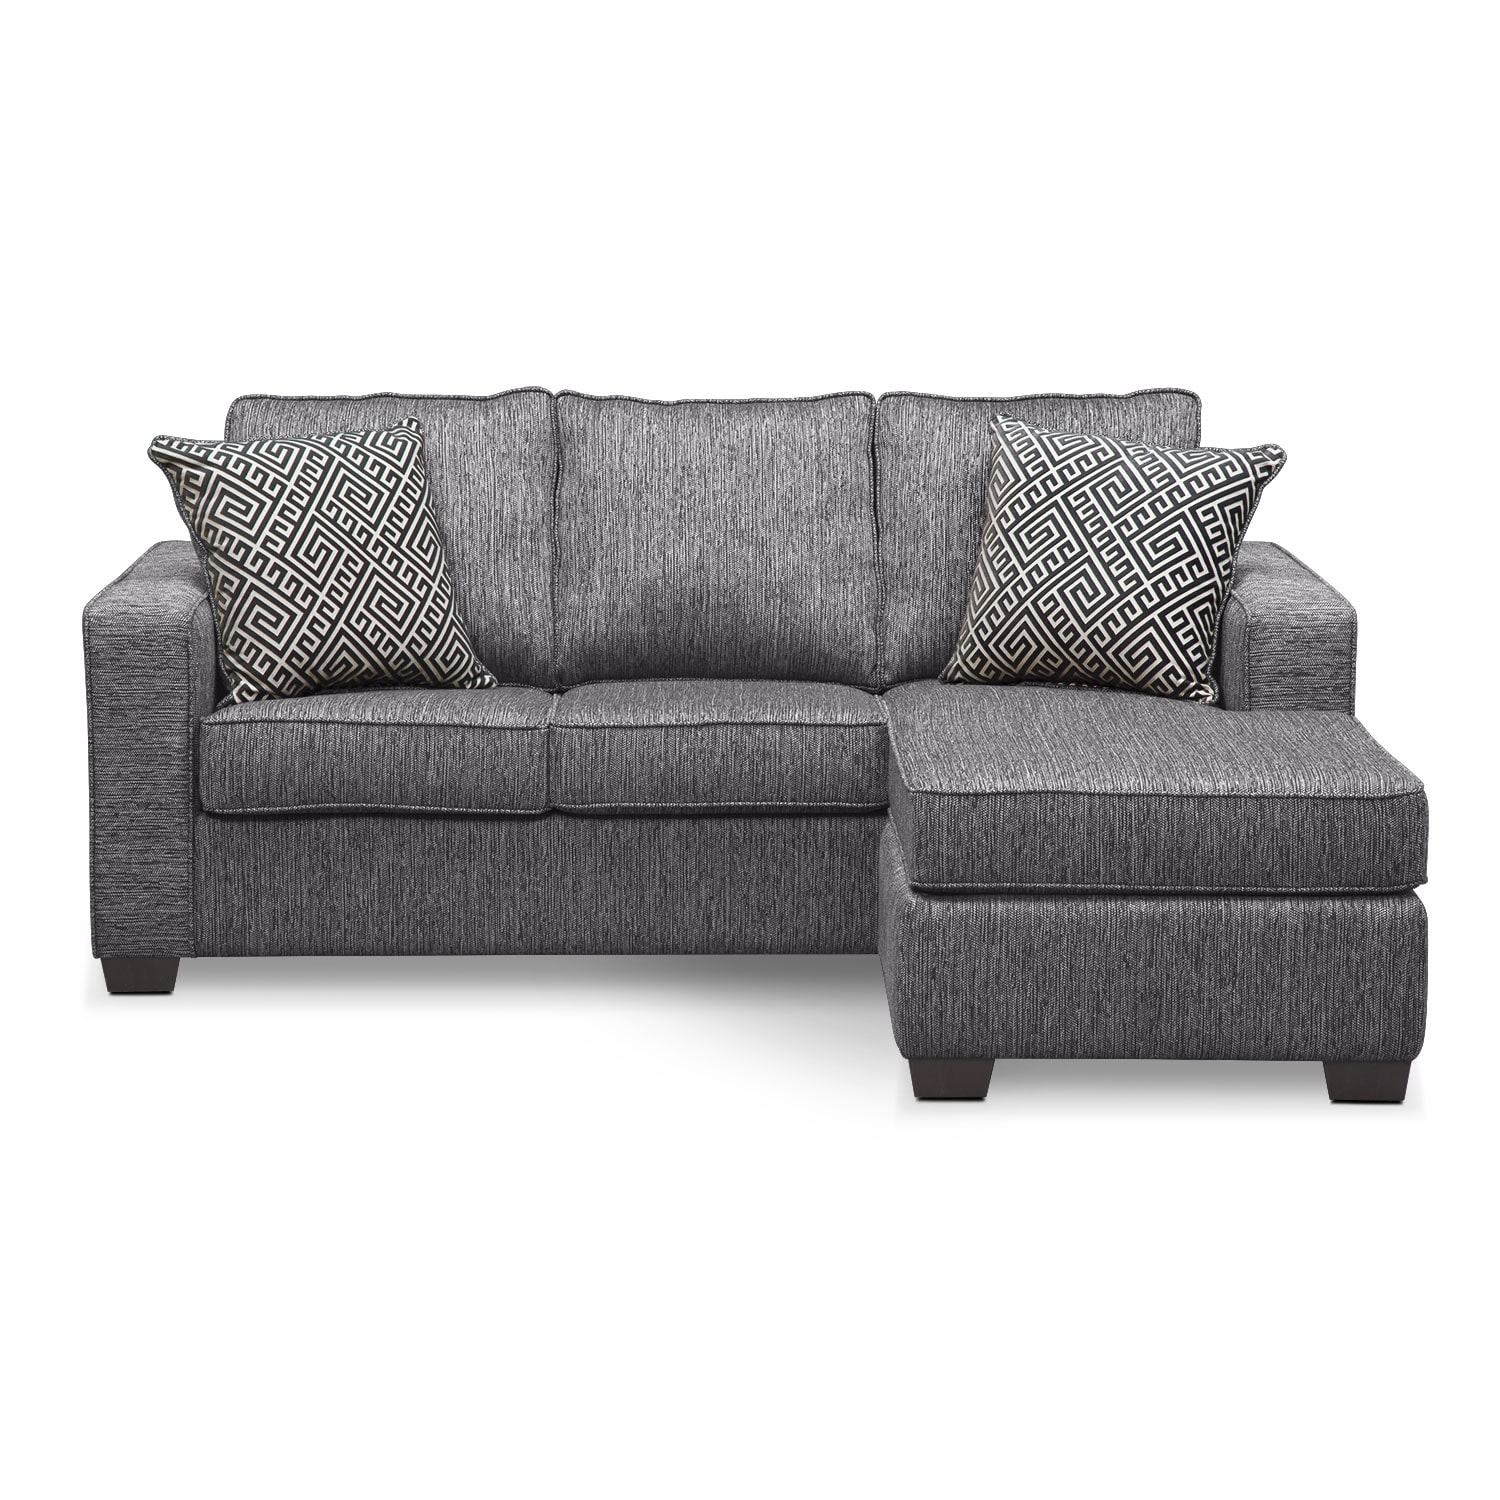 Sofa Bed For Sale In Quezon City: Sterling Innerspring Sleeper Sofa With Chaise